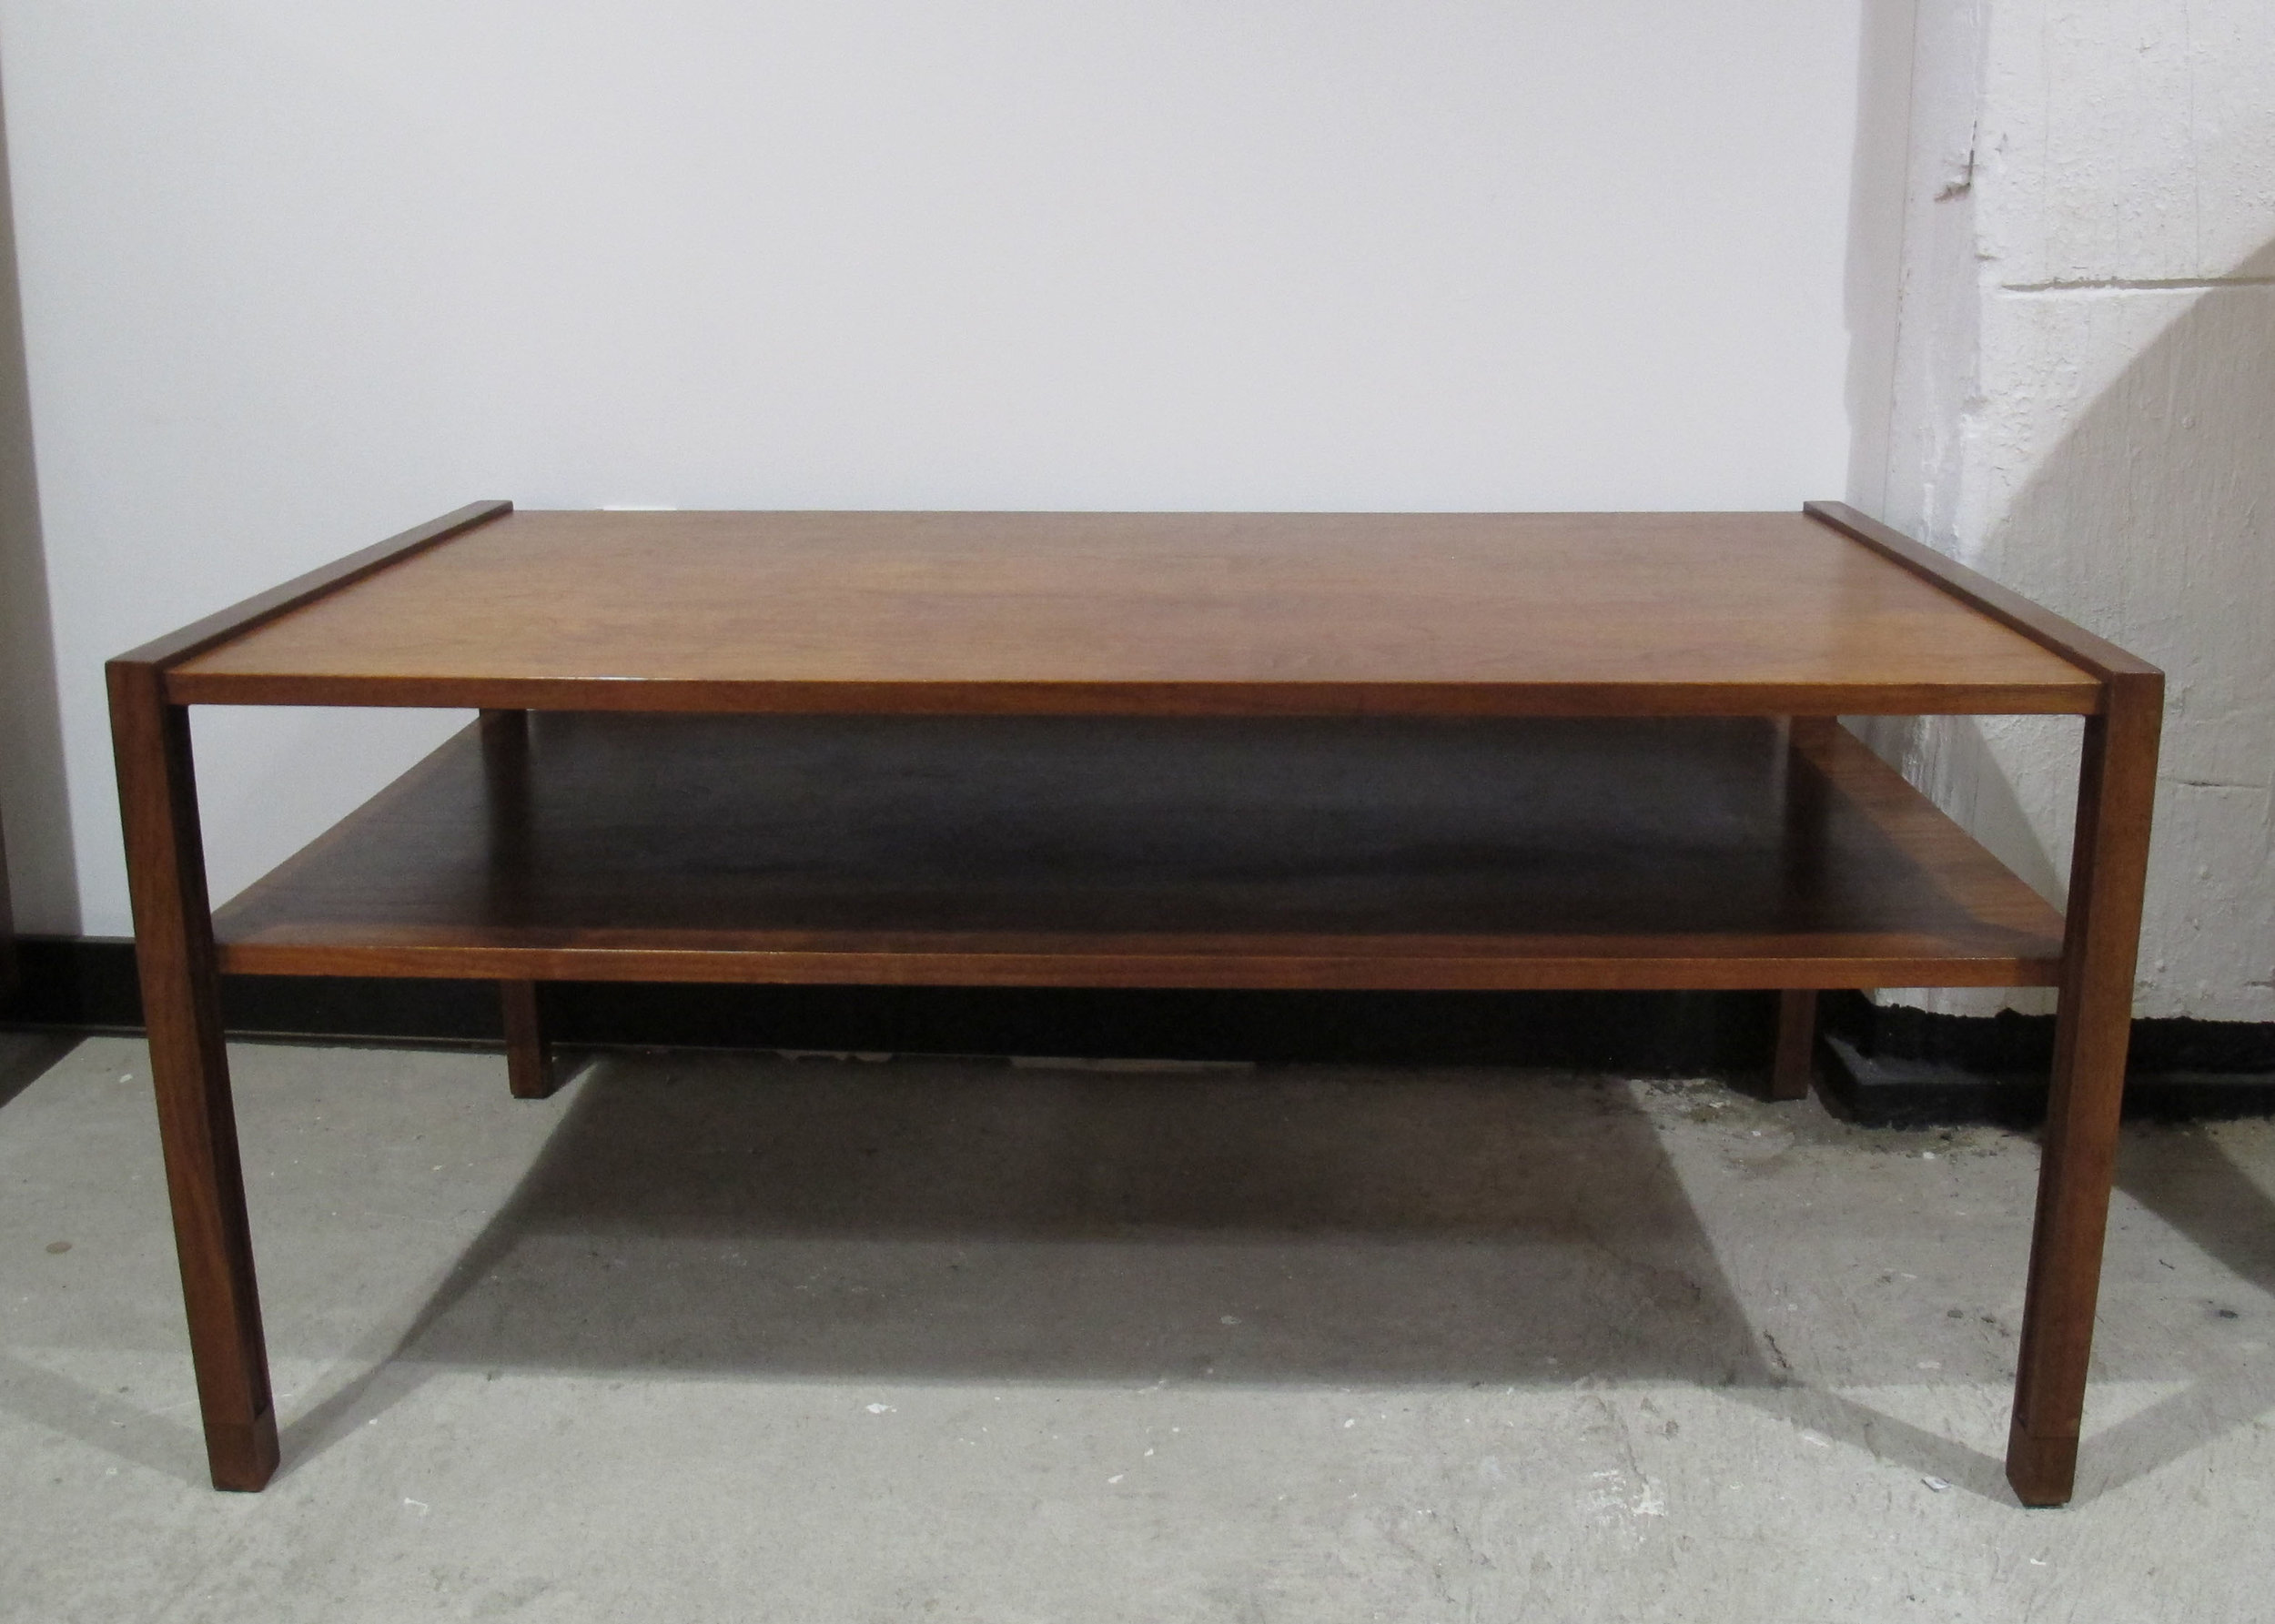 DUNBAR MID CENTURY TWO-TIER CONSOLE TABLE